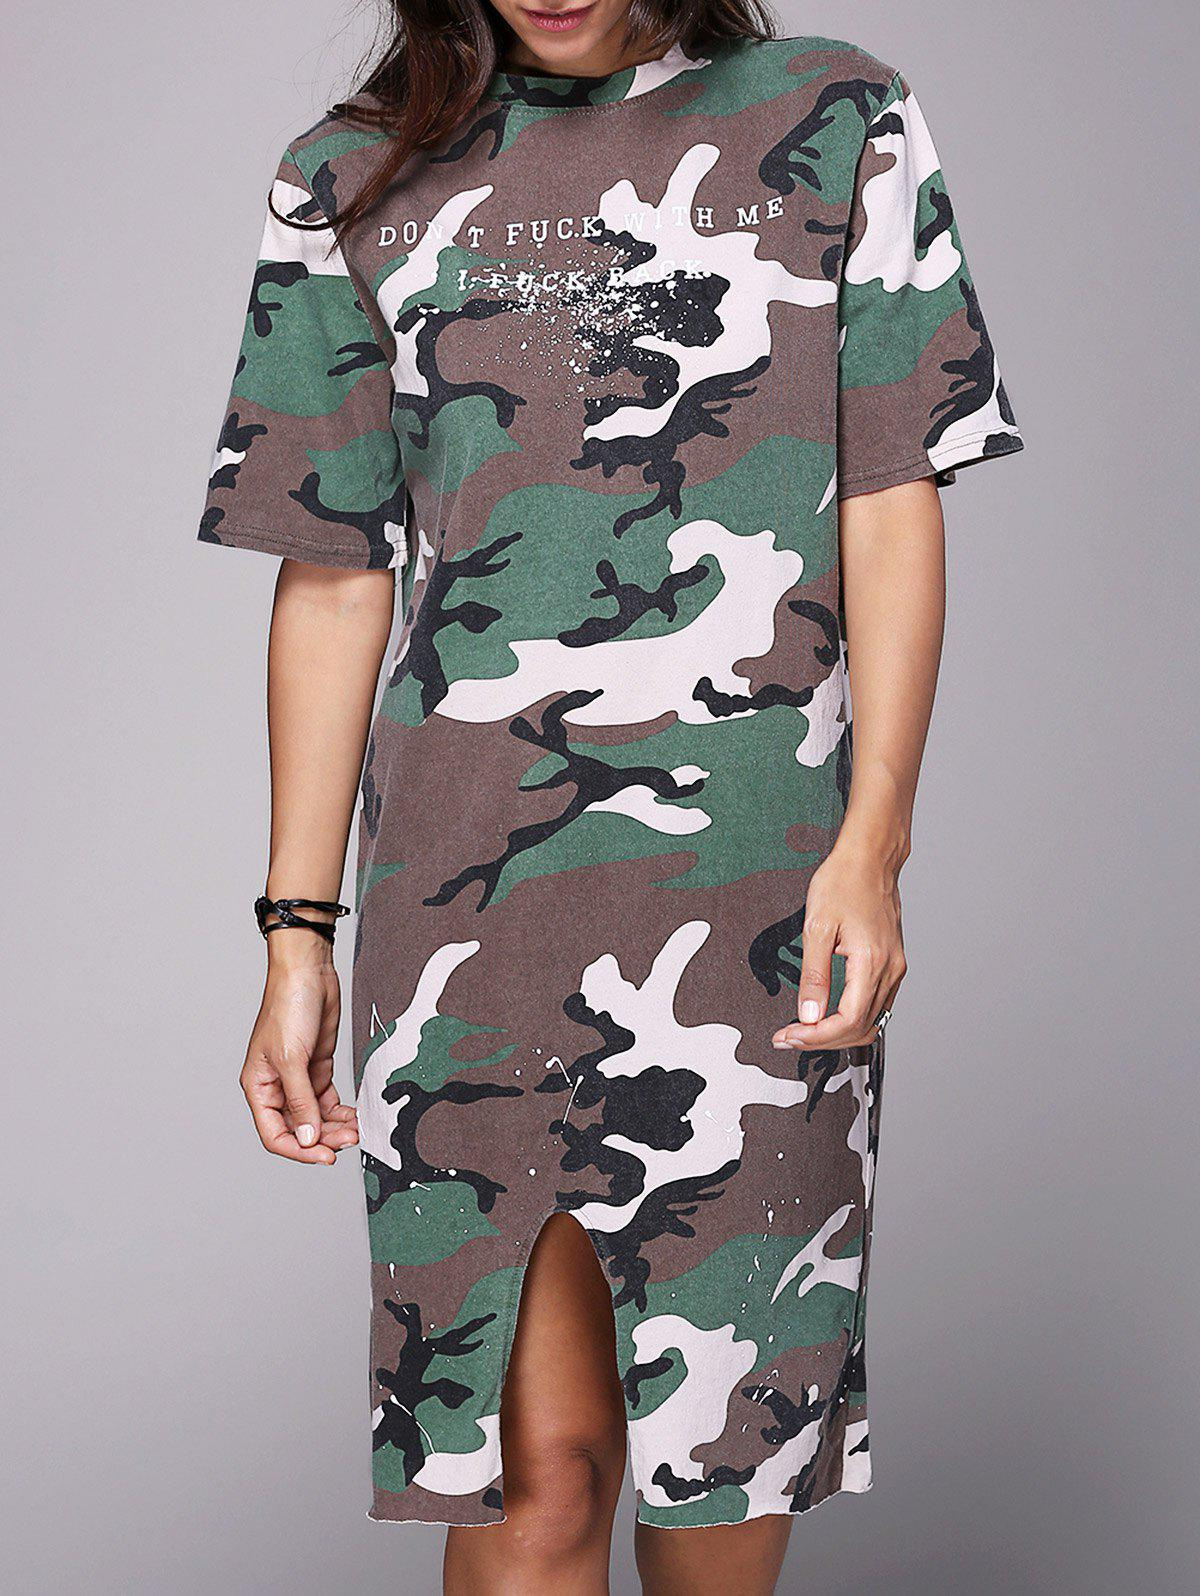 Fashionable Women's Round Neck Half Sleeve Camo T-Shirt Dress - CAMOUFLAGE ONE SIZE(FIT SIZE XS TO M)